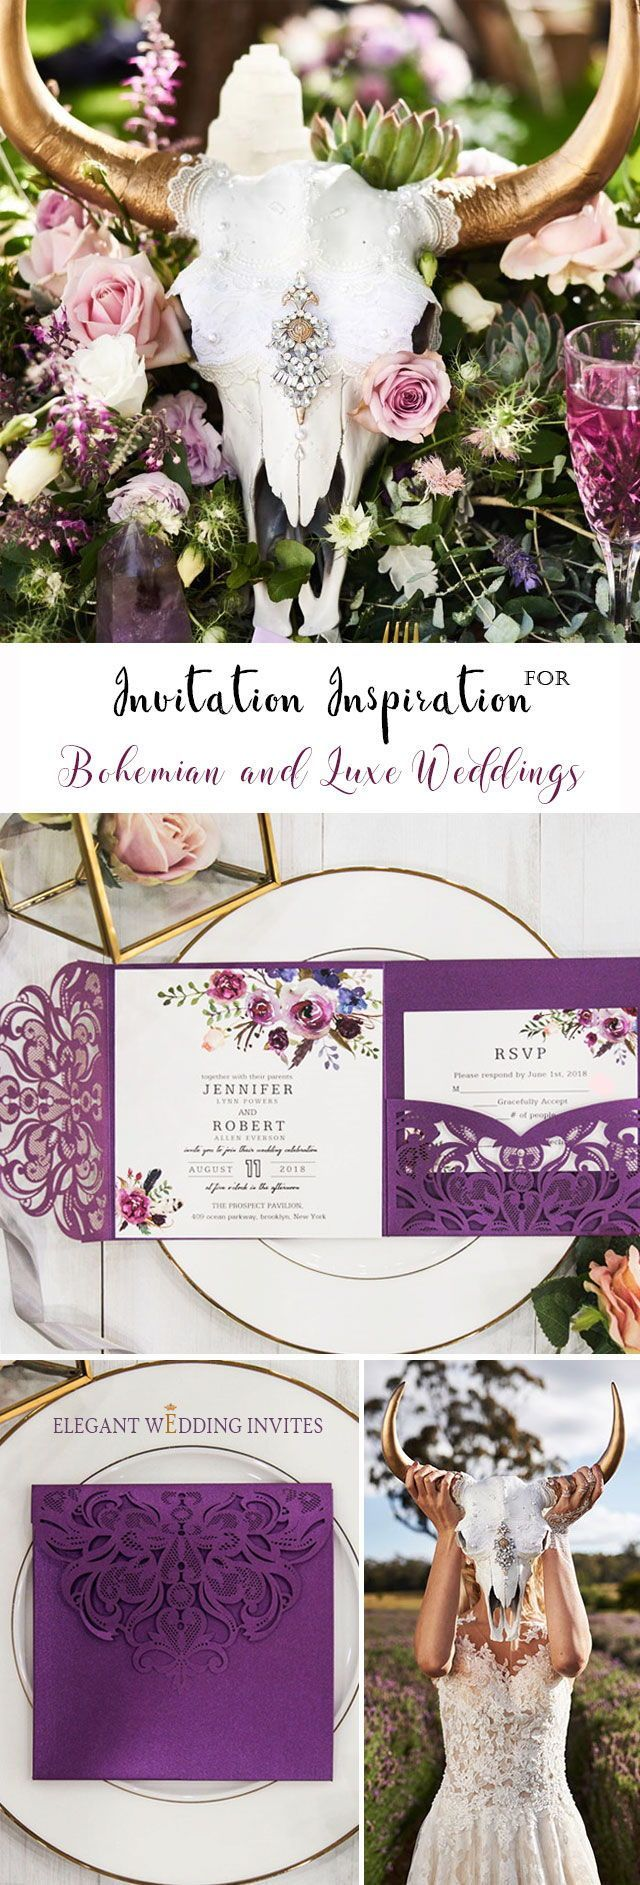 happily ever after wedding invitations%0A radiography cover letter